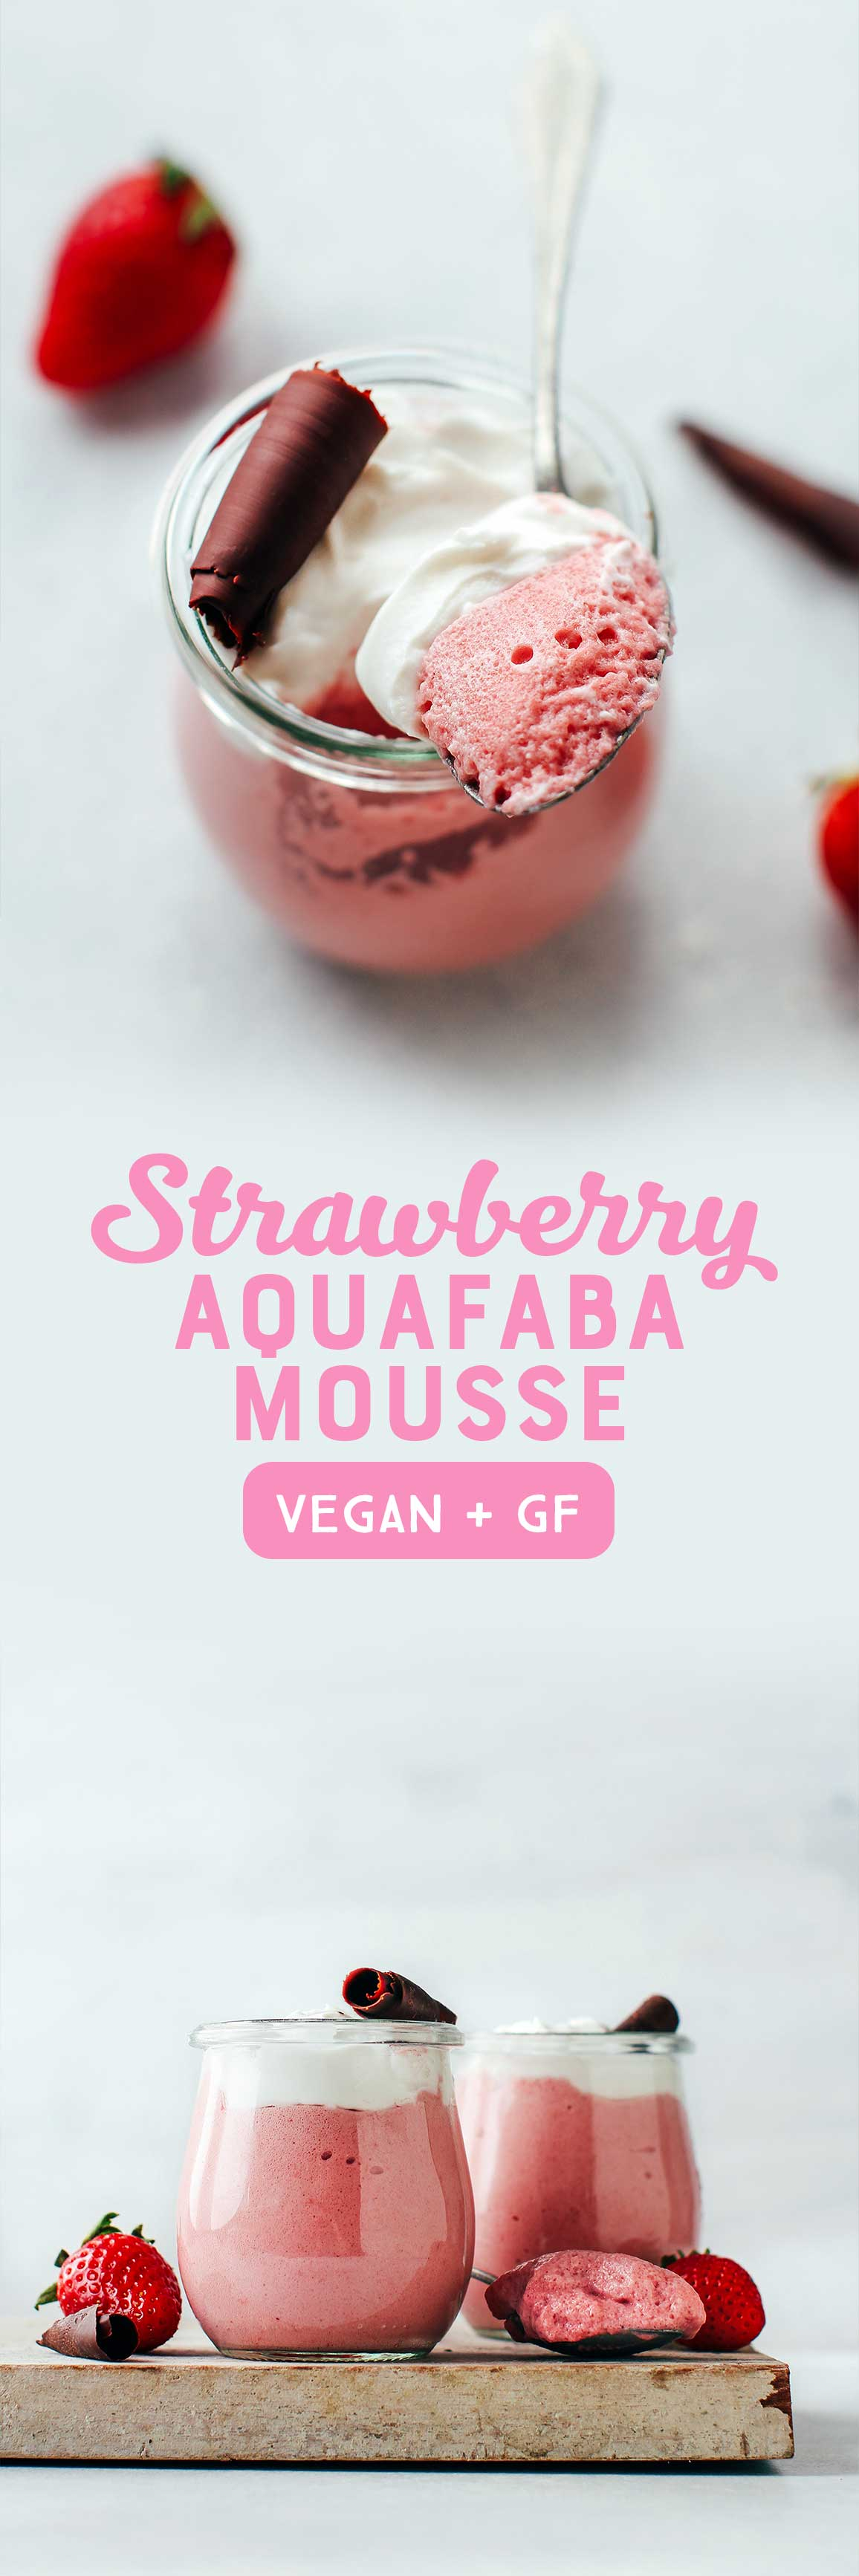 Aquafaba Strawberry Mousse